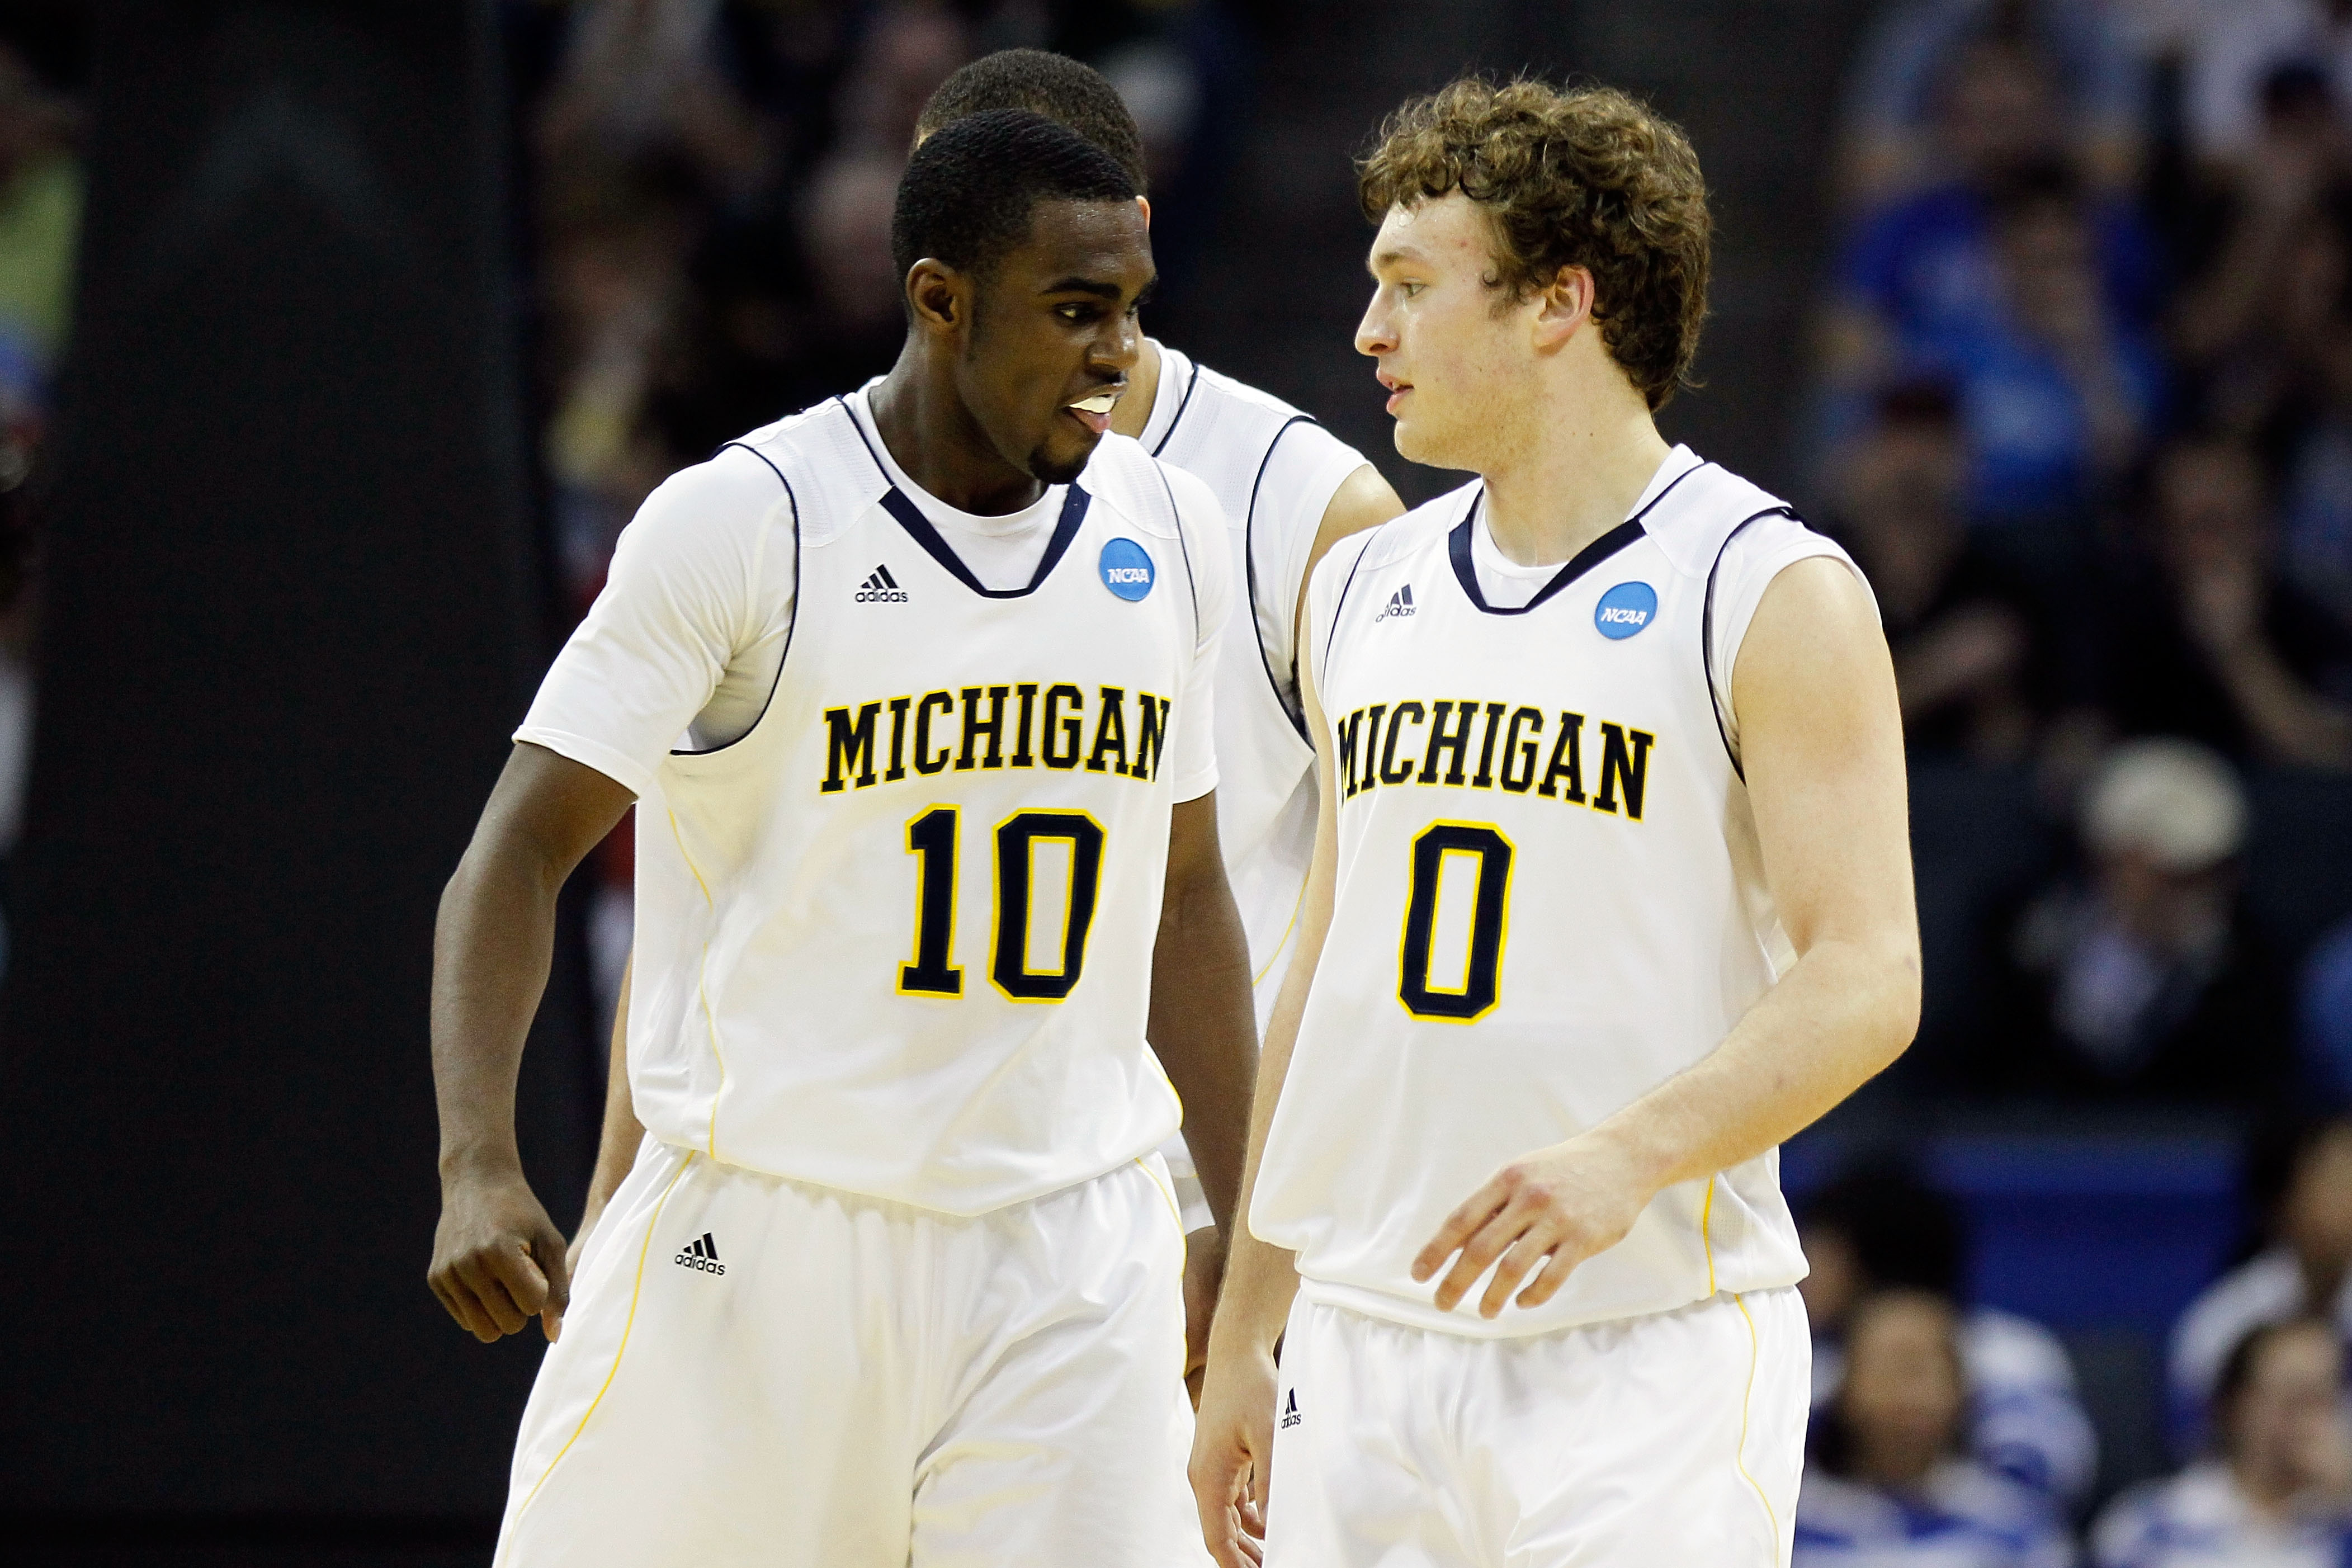 CHARLOTTE, NC - MARCH 18:  Tim Hardaway Jr. #10 and Zack Novak #0 of the Michigan Wolverines react in the second half while taking on the Tennessee Volunteers during the second round of the 2011 NCAA men's basketball tournament at Time Warner Cable Arena